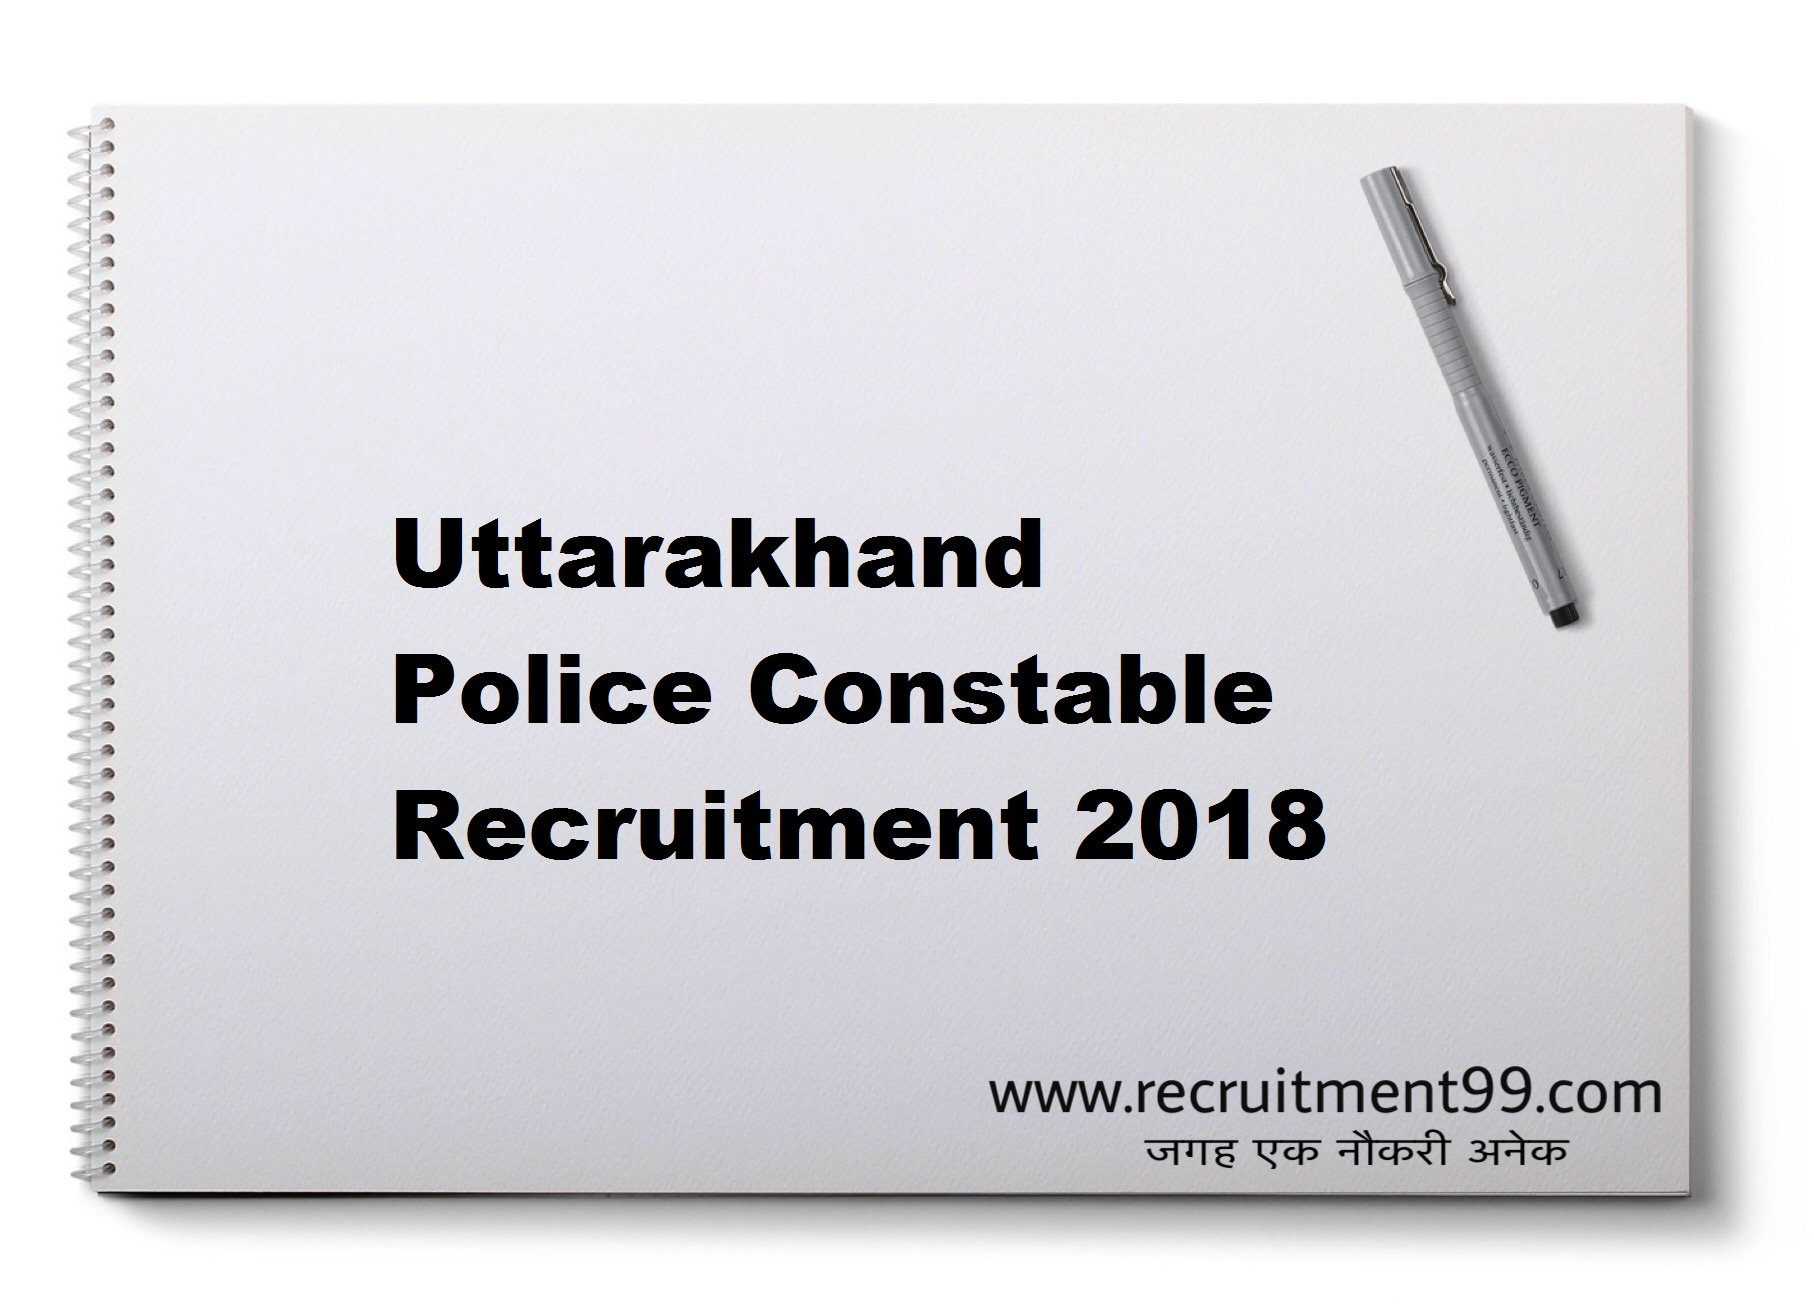 Uttarakhand Police Constable Recruitment Admit Card Result 2018